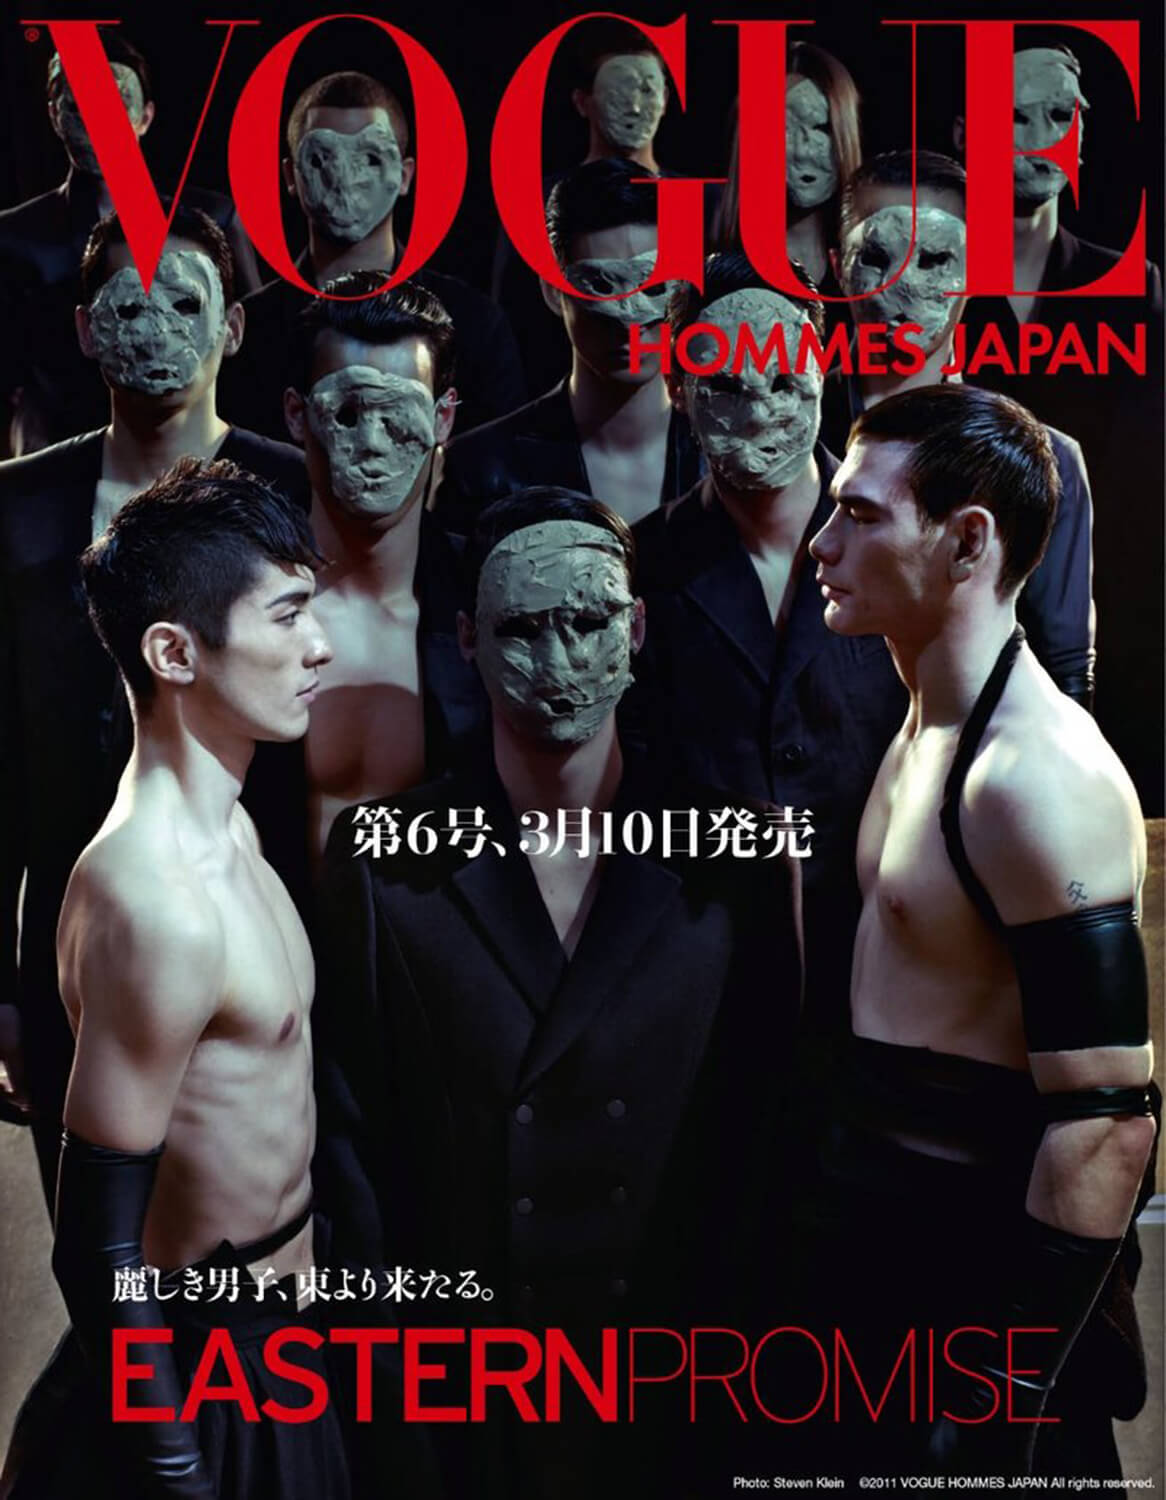 Vogue Hommes Japan Cover for Vogue Hommes Japan (Spring/Summer 2011)